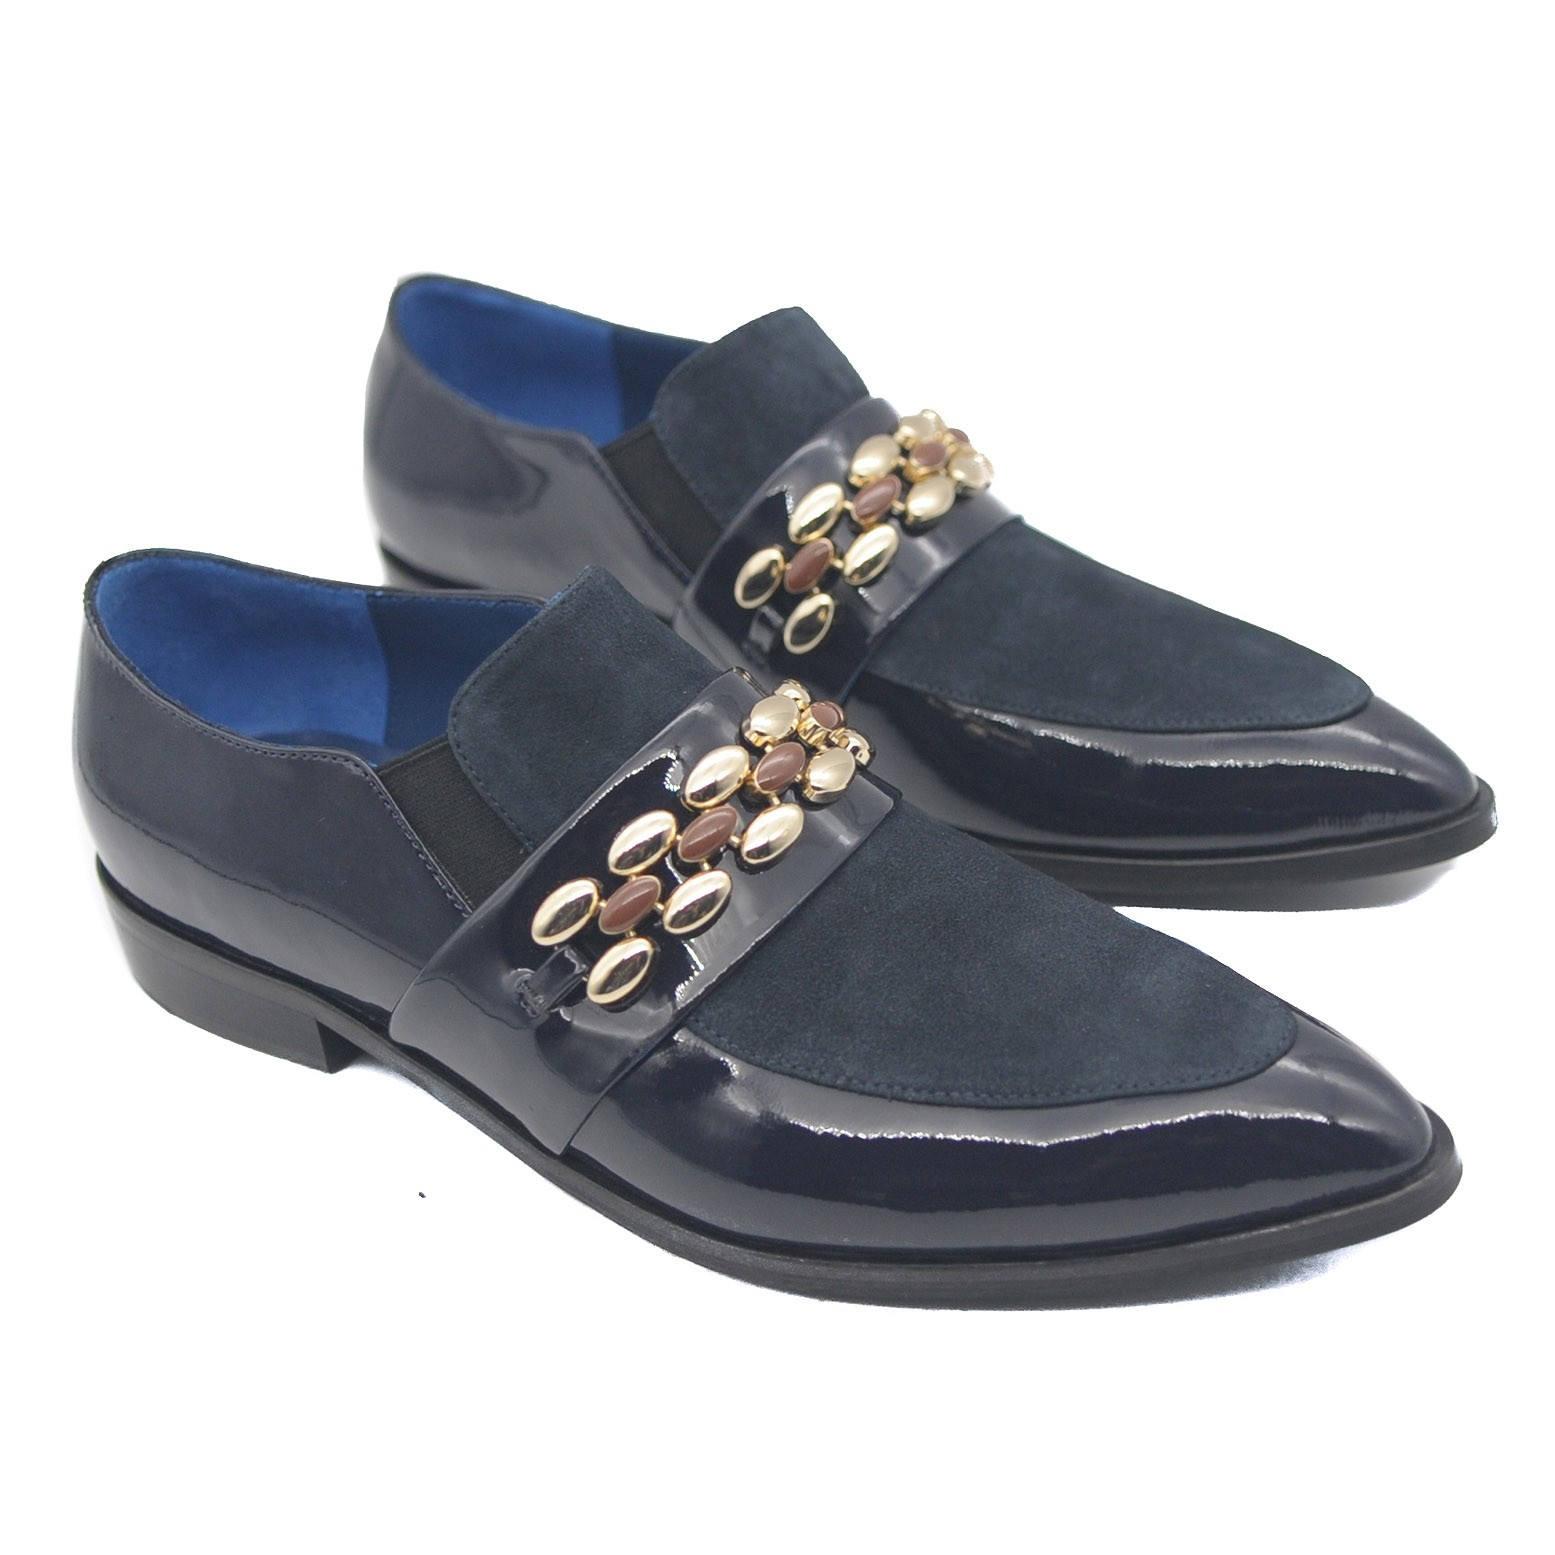 Goody2Shoes Ladies Navy Suede and Patent Black Leather Slip on Loafer with Beads